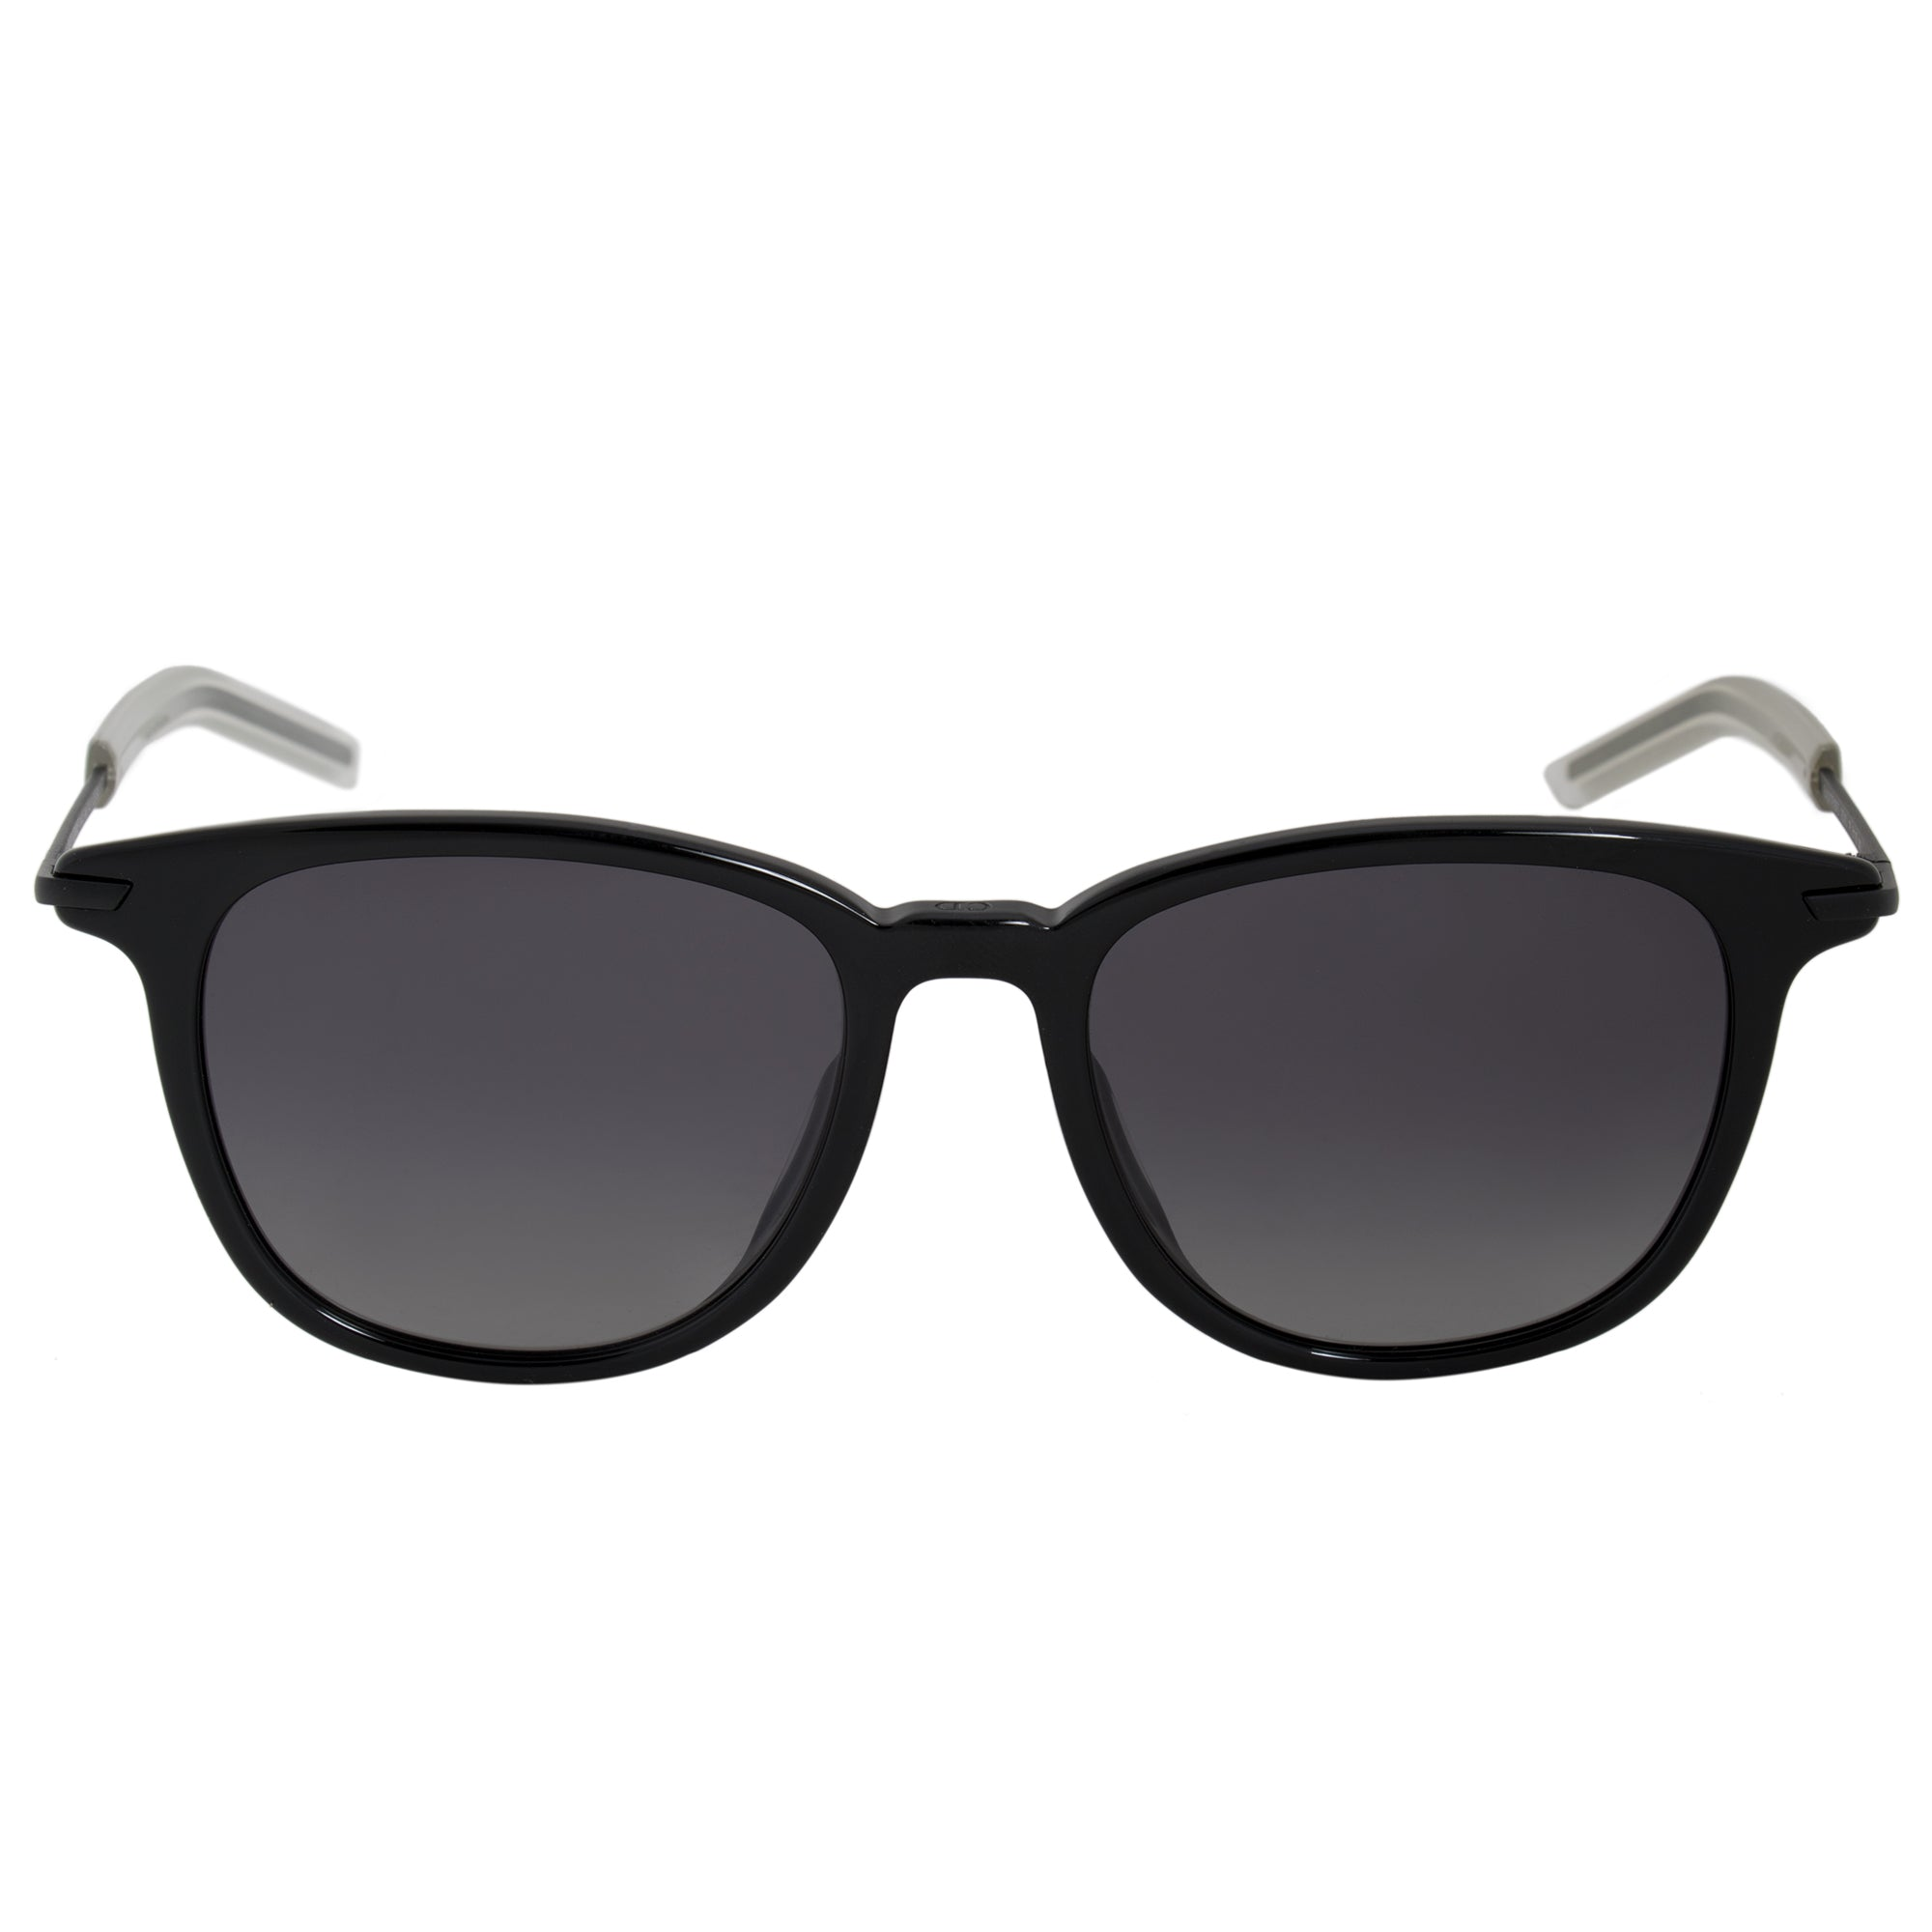 Christian Dior Black Tie 263WJ Sunglasses 51